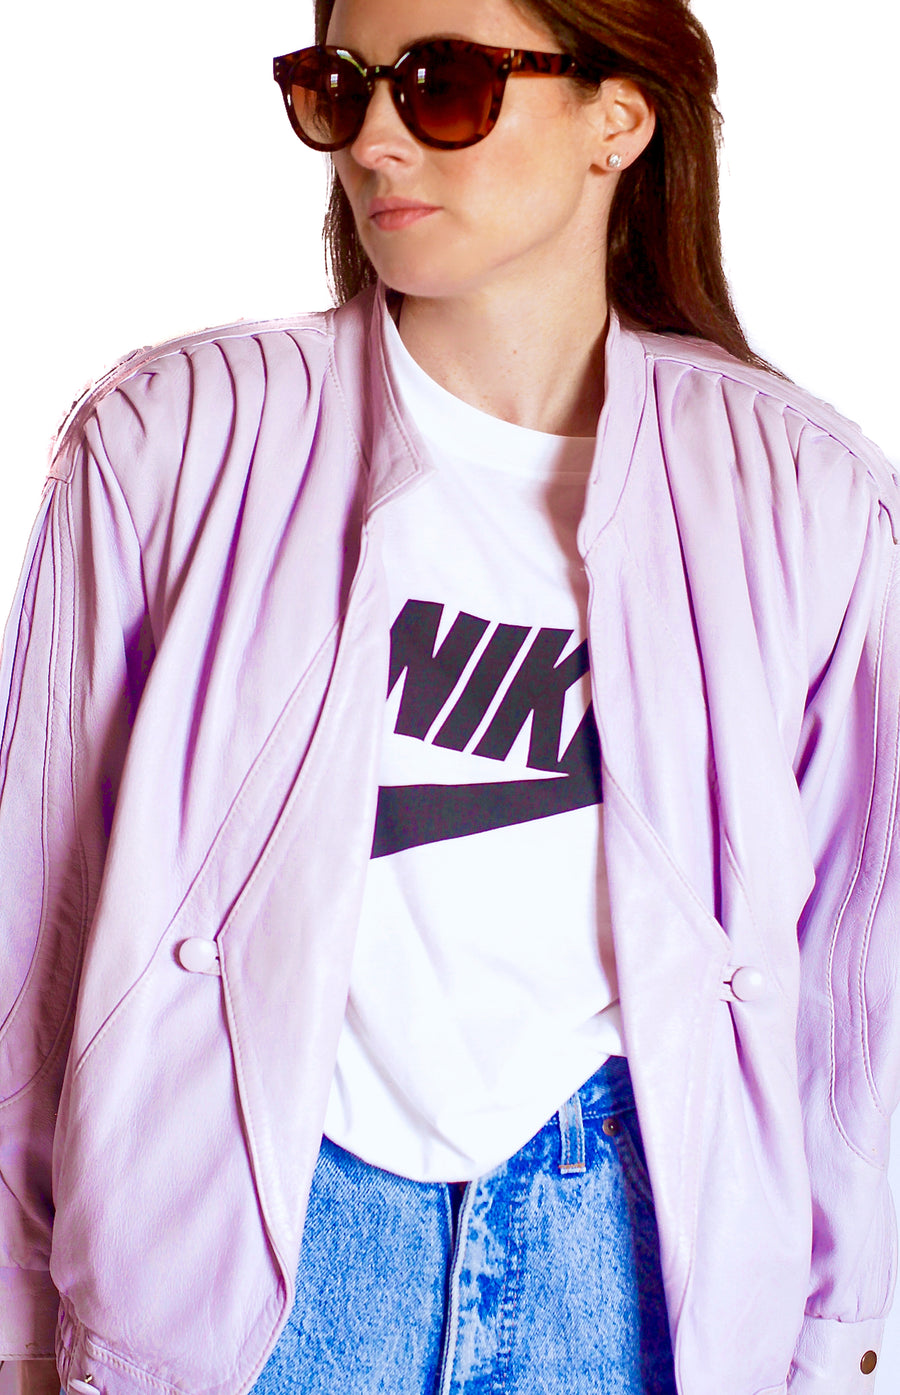 Vintage 1980s lilac leather jacket